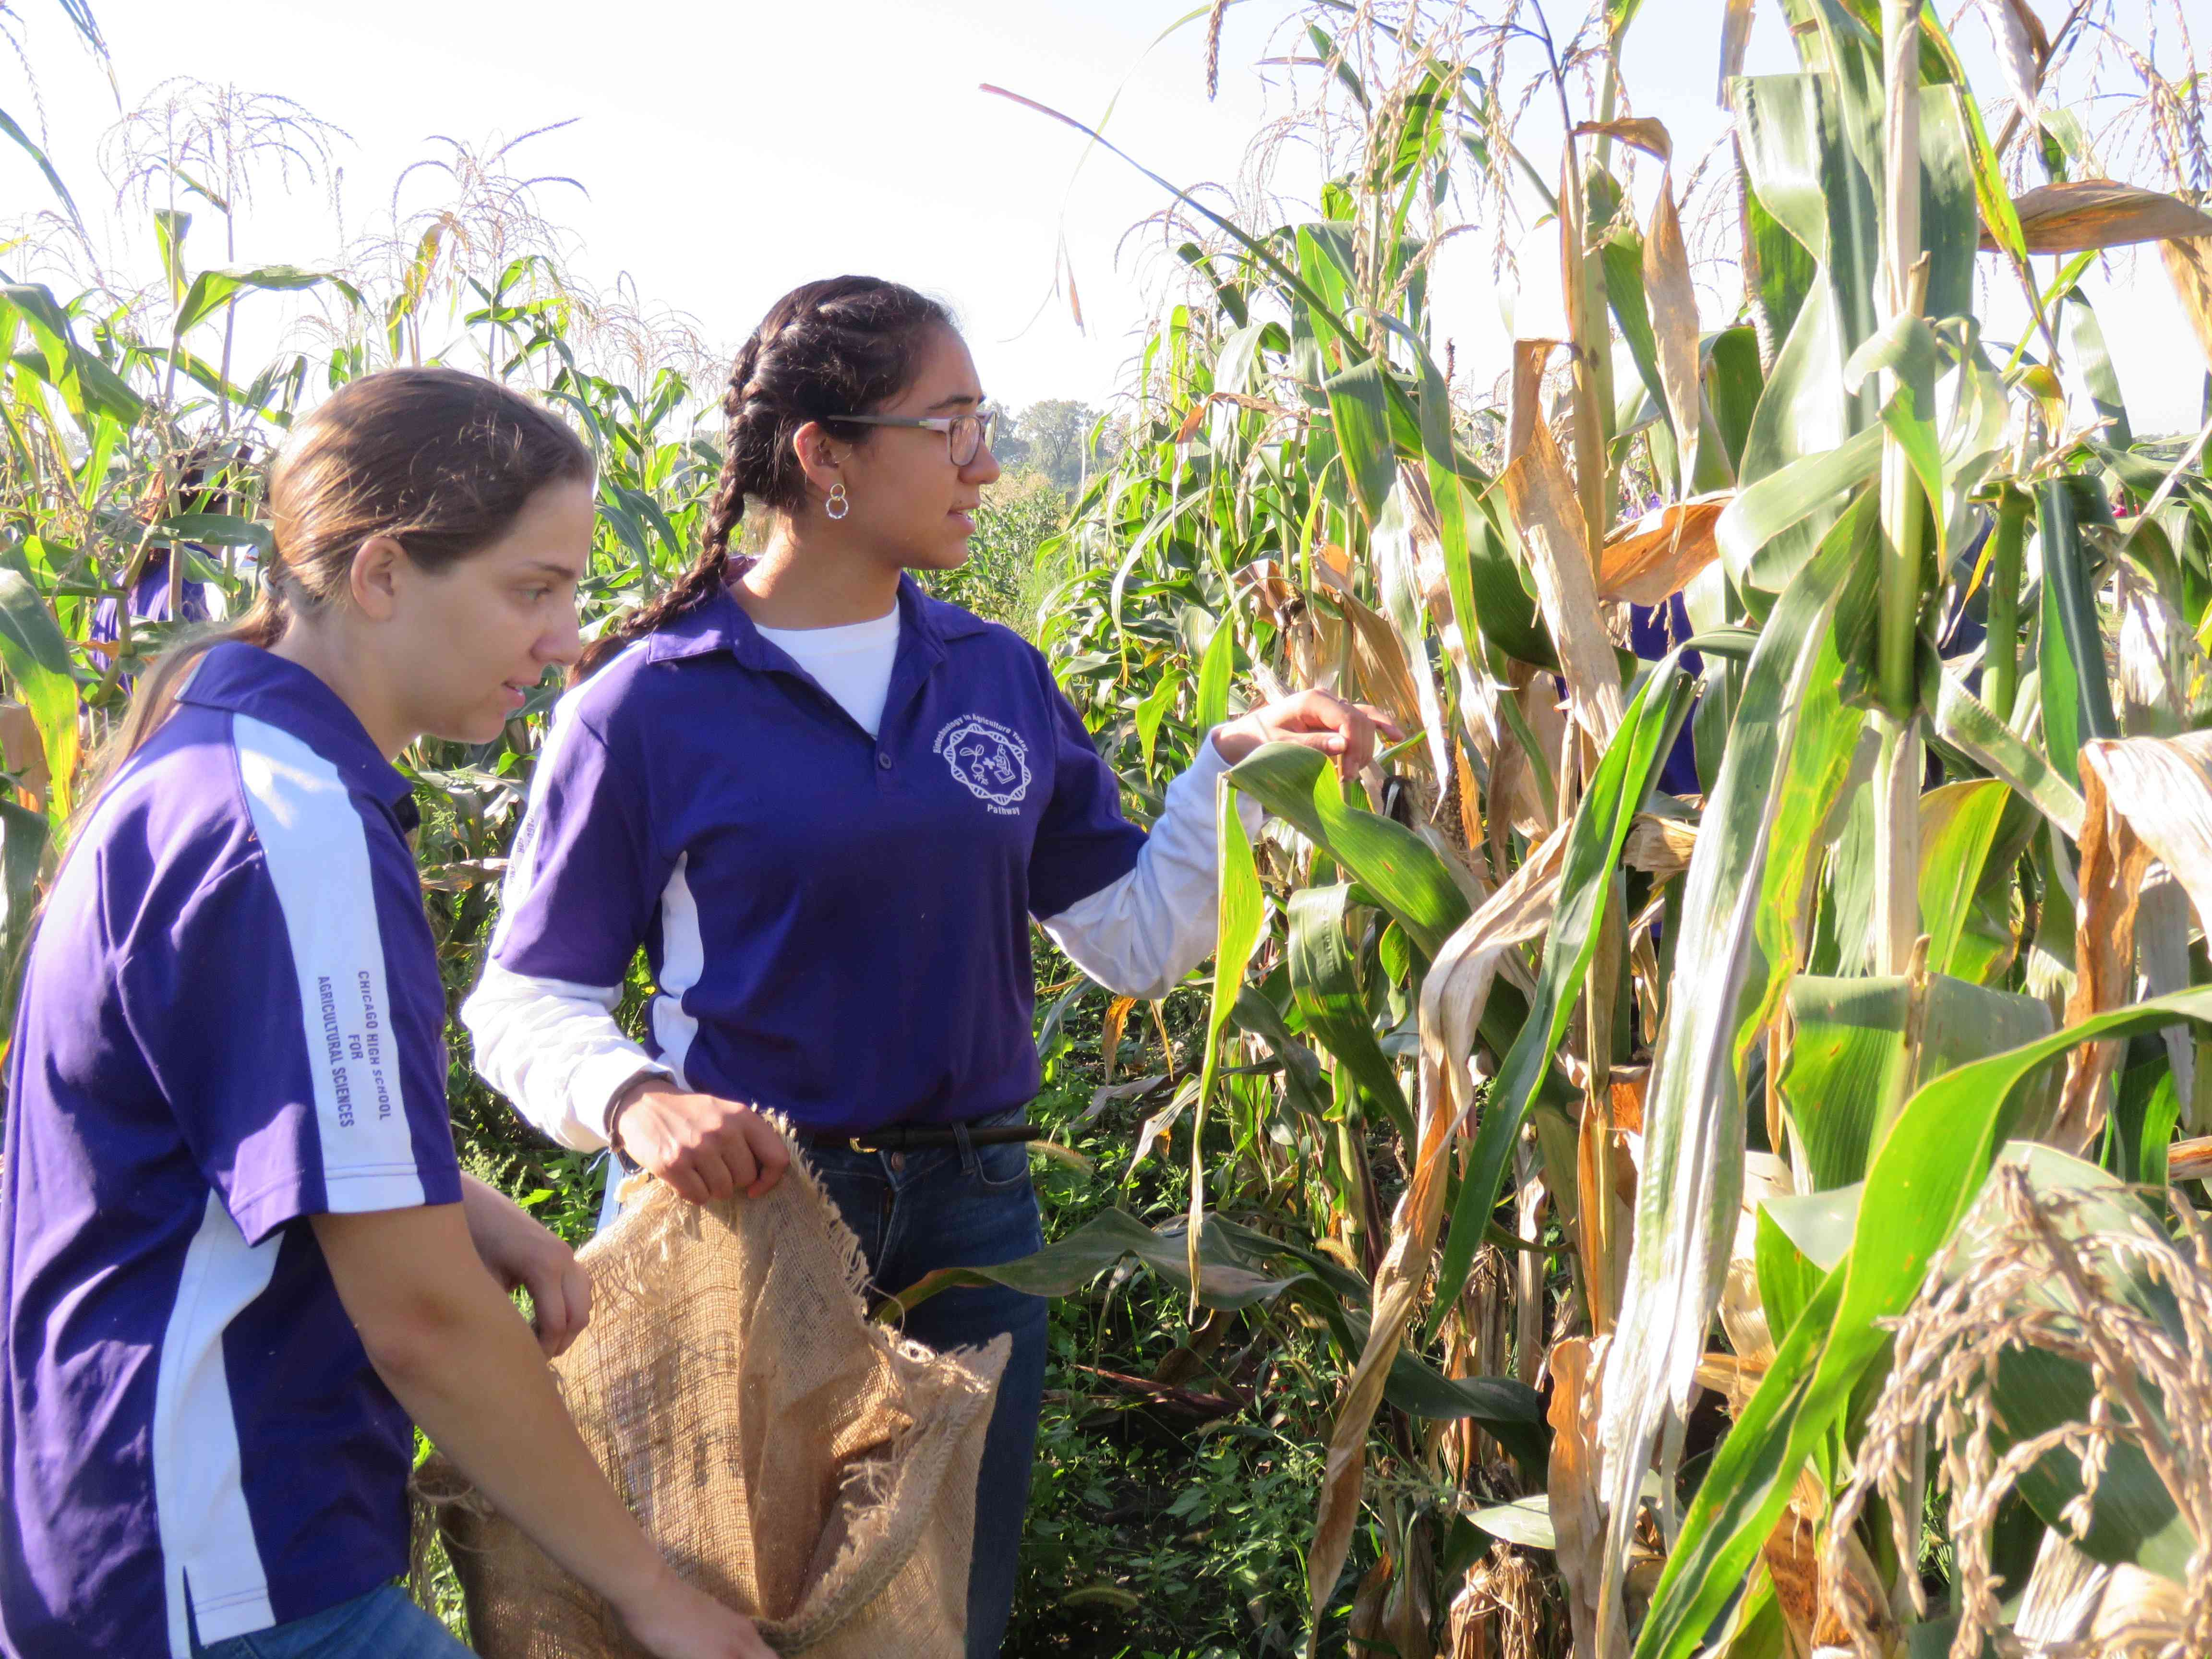 Students inspect crops on campus.